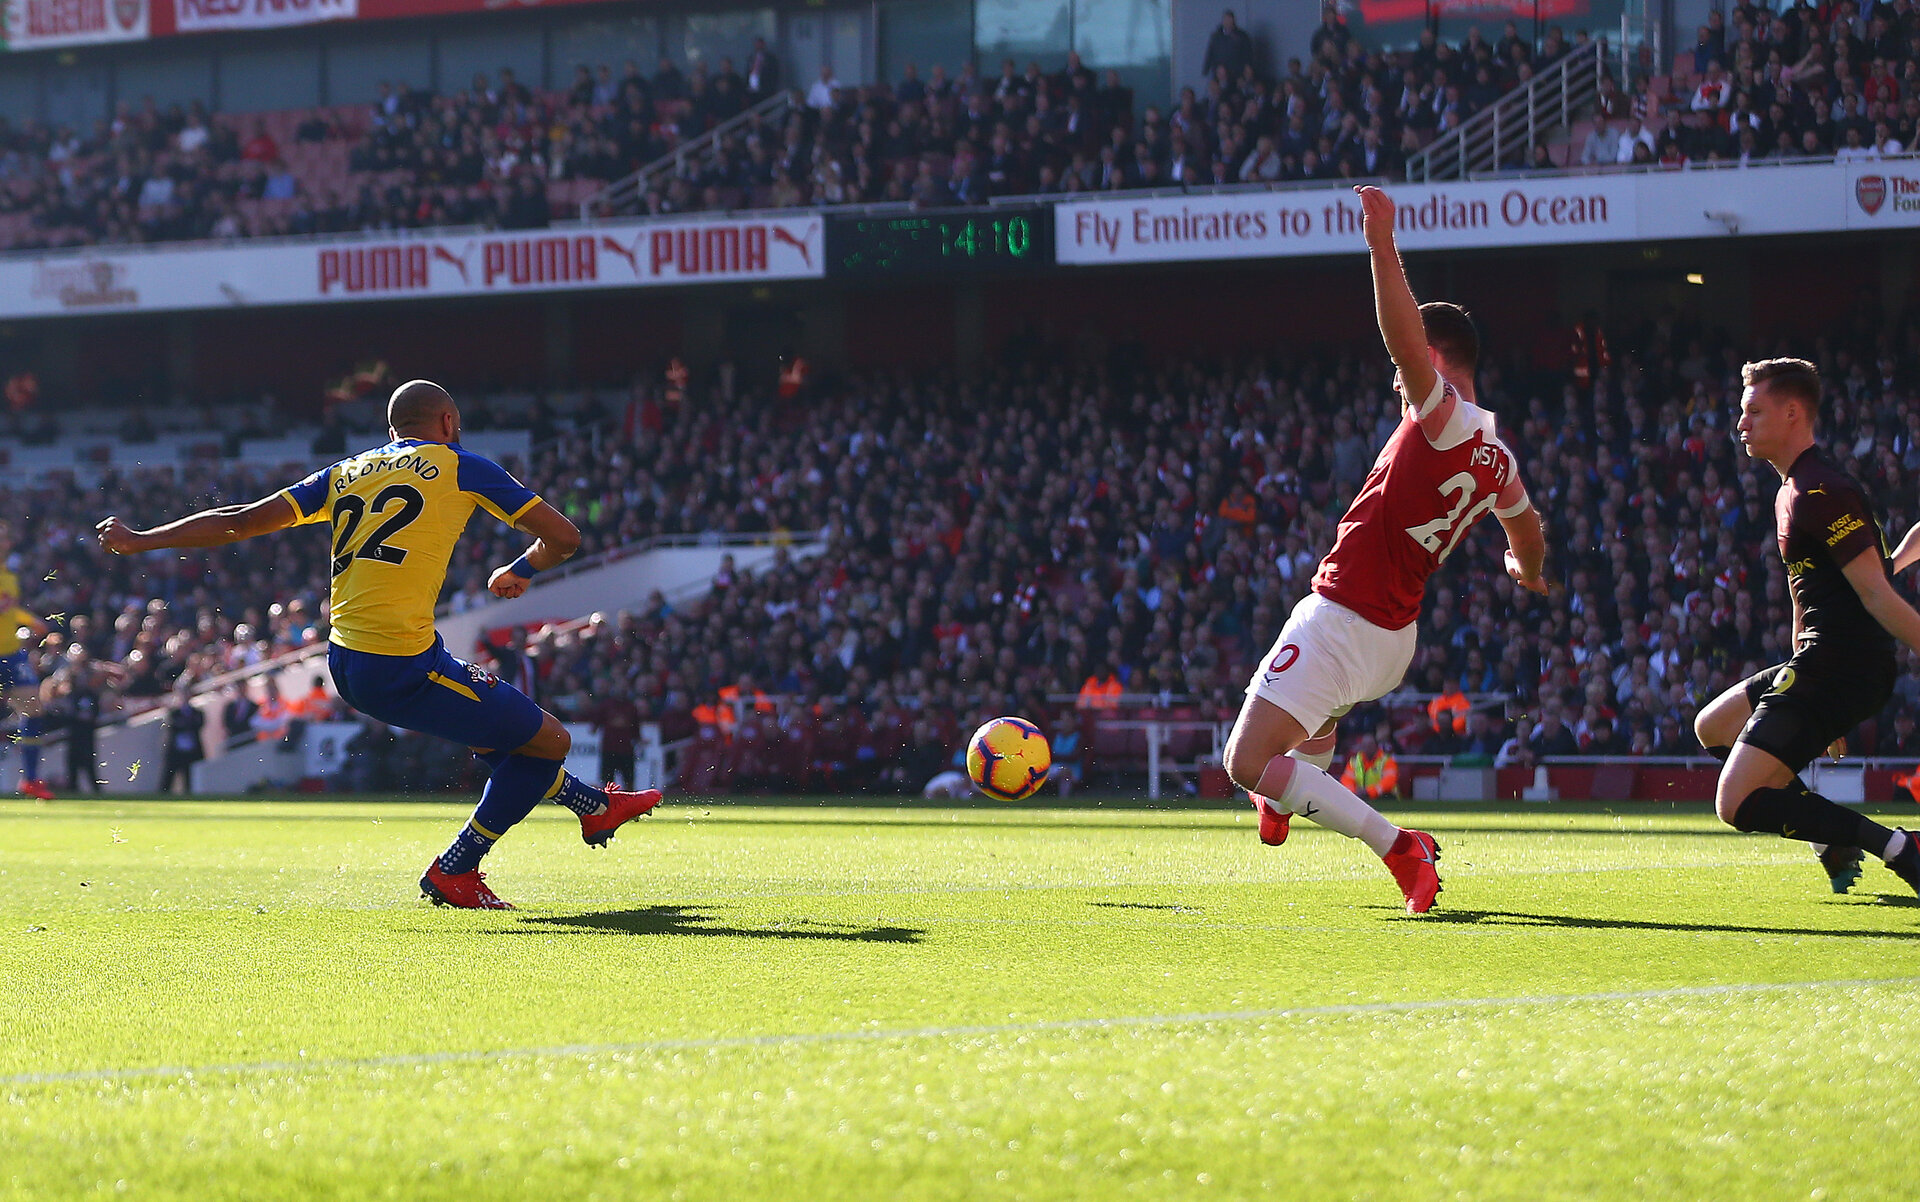 LONDON, ENGLAND - FEBRUARY 24: Nathan Redmond(L) of Southampton shoots at goal as his shot is saved by Bernd Leno during the Premier League match between Arsenal FC and Southampton FC at Emirates Stadium on February 24, 2019 in London, United Kingdom. (Photo by Matt Watson/Southampton FC via Getty Images)